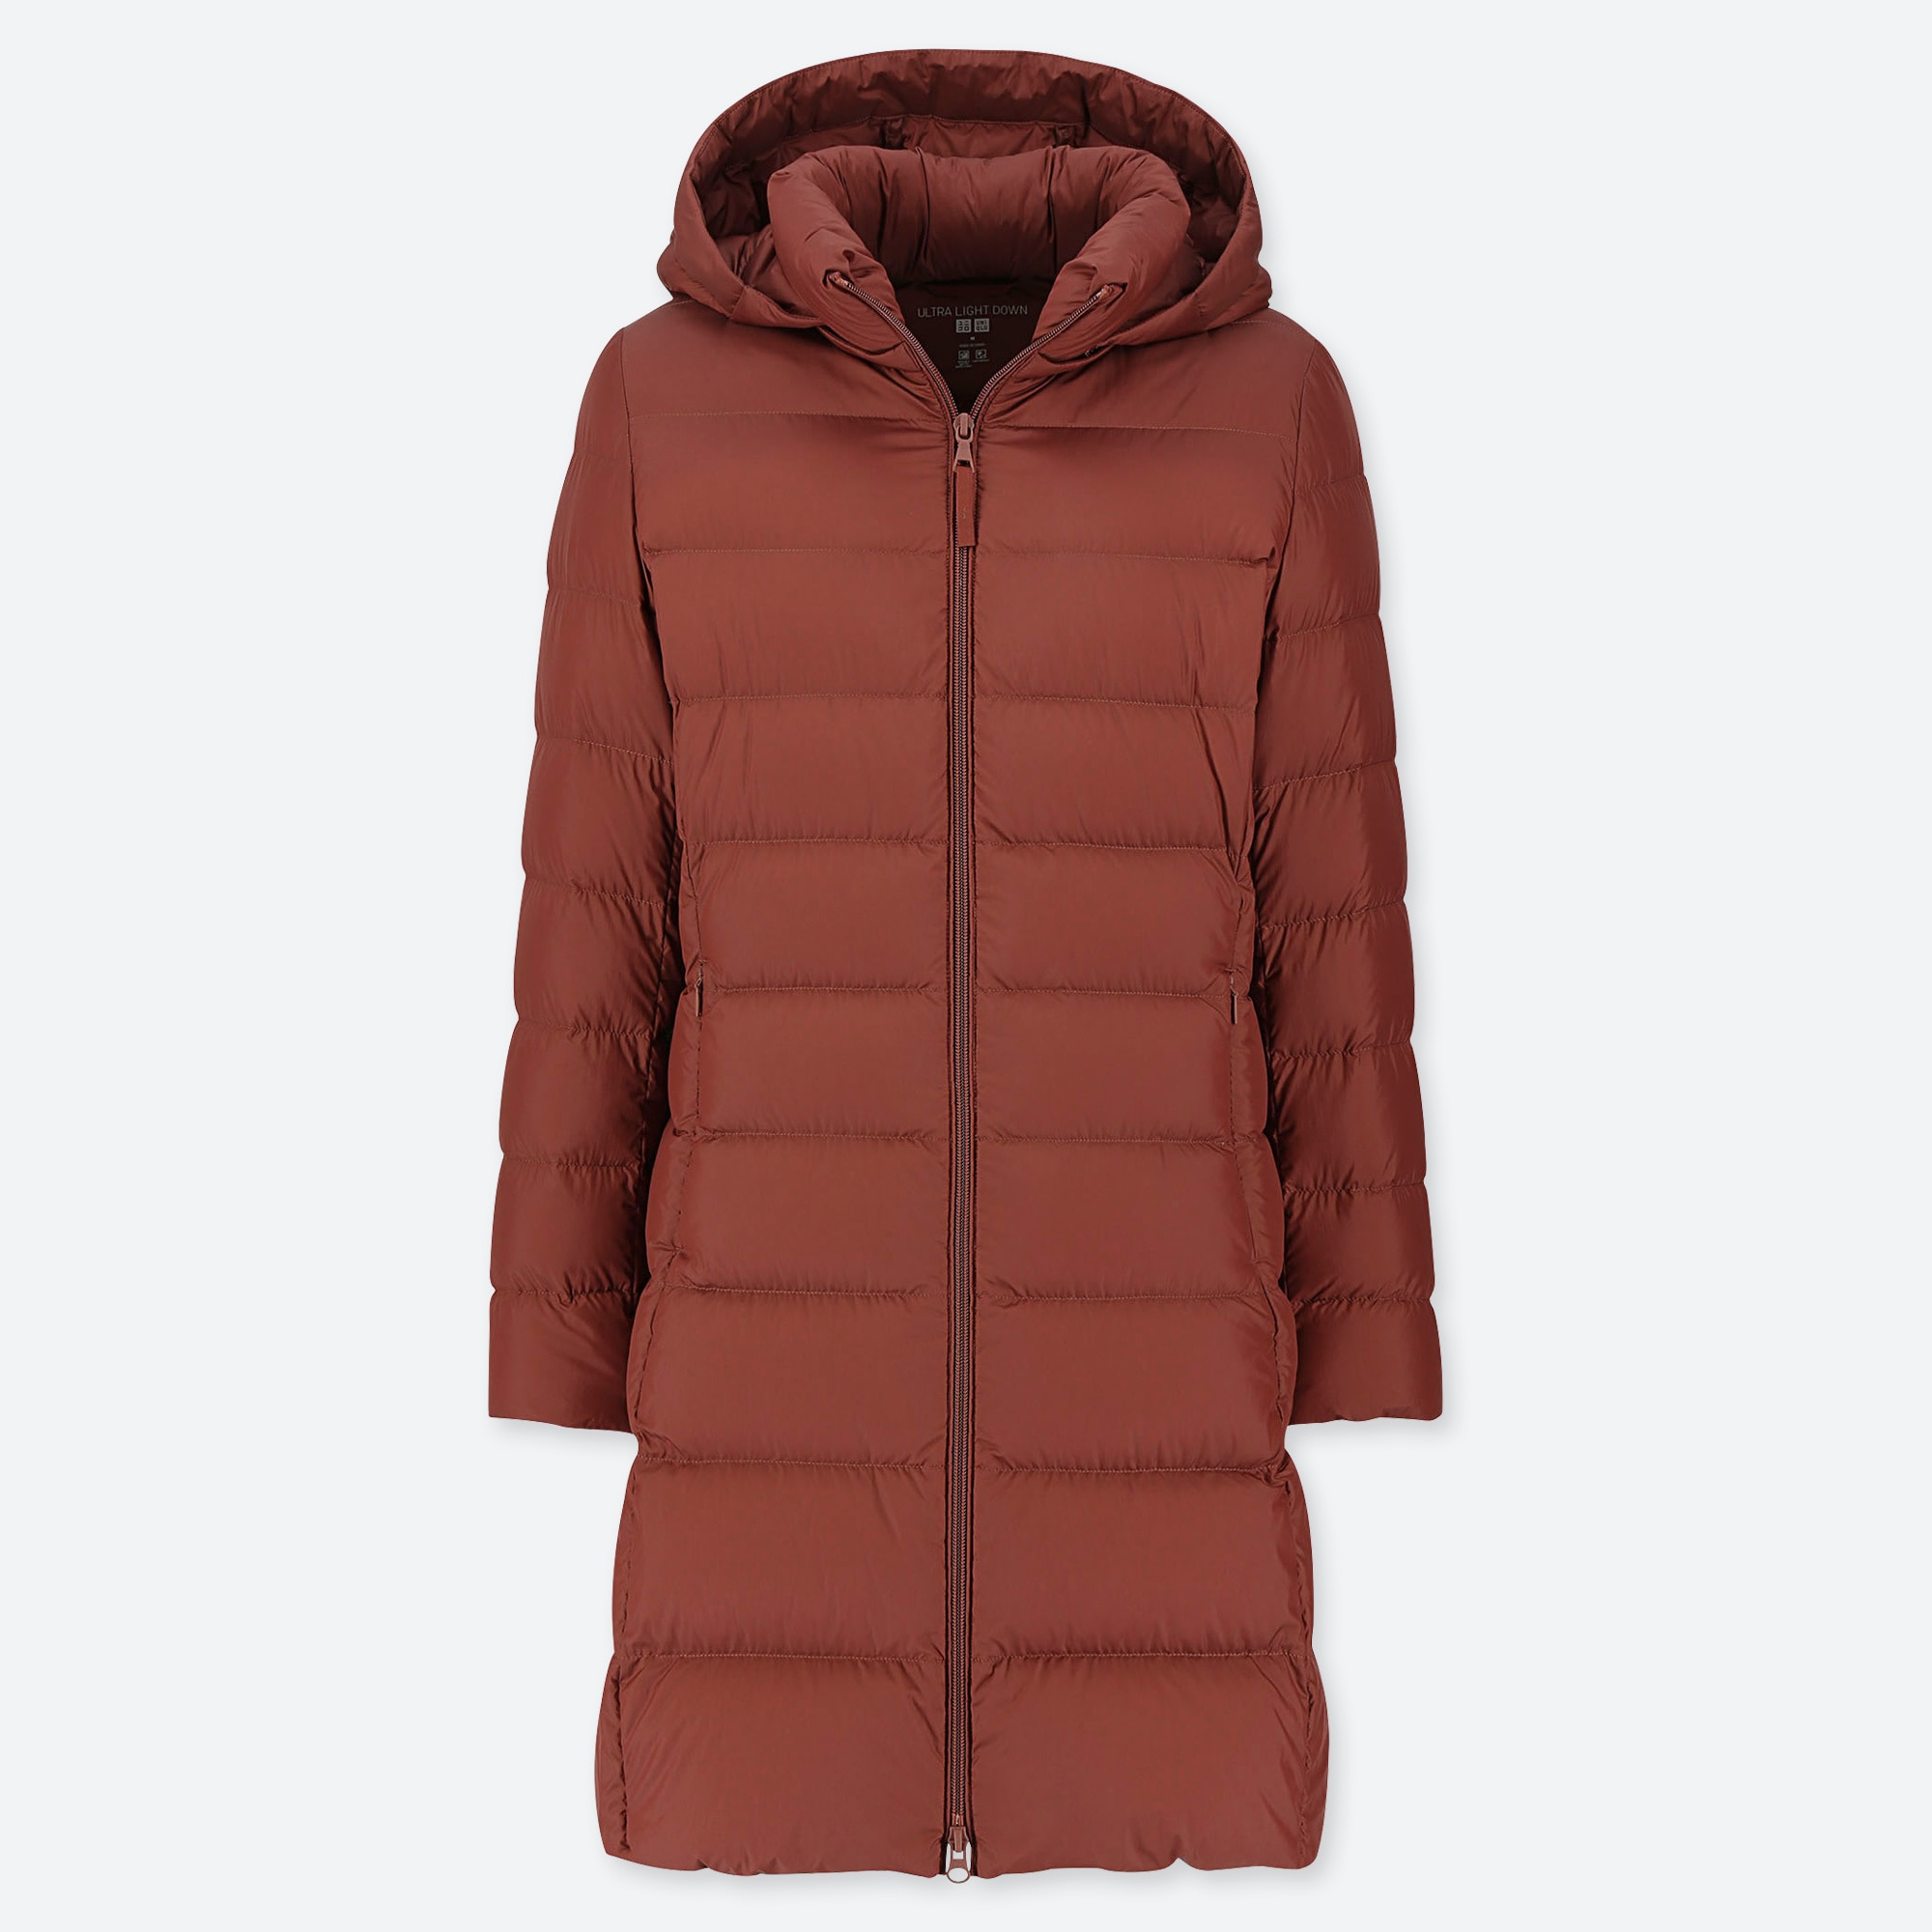 WOMEN ULTRA LIGHT DOWN HOODED COAT : Color - 69 Navy, Size - S (419852)